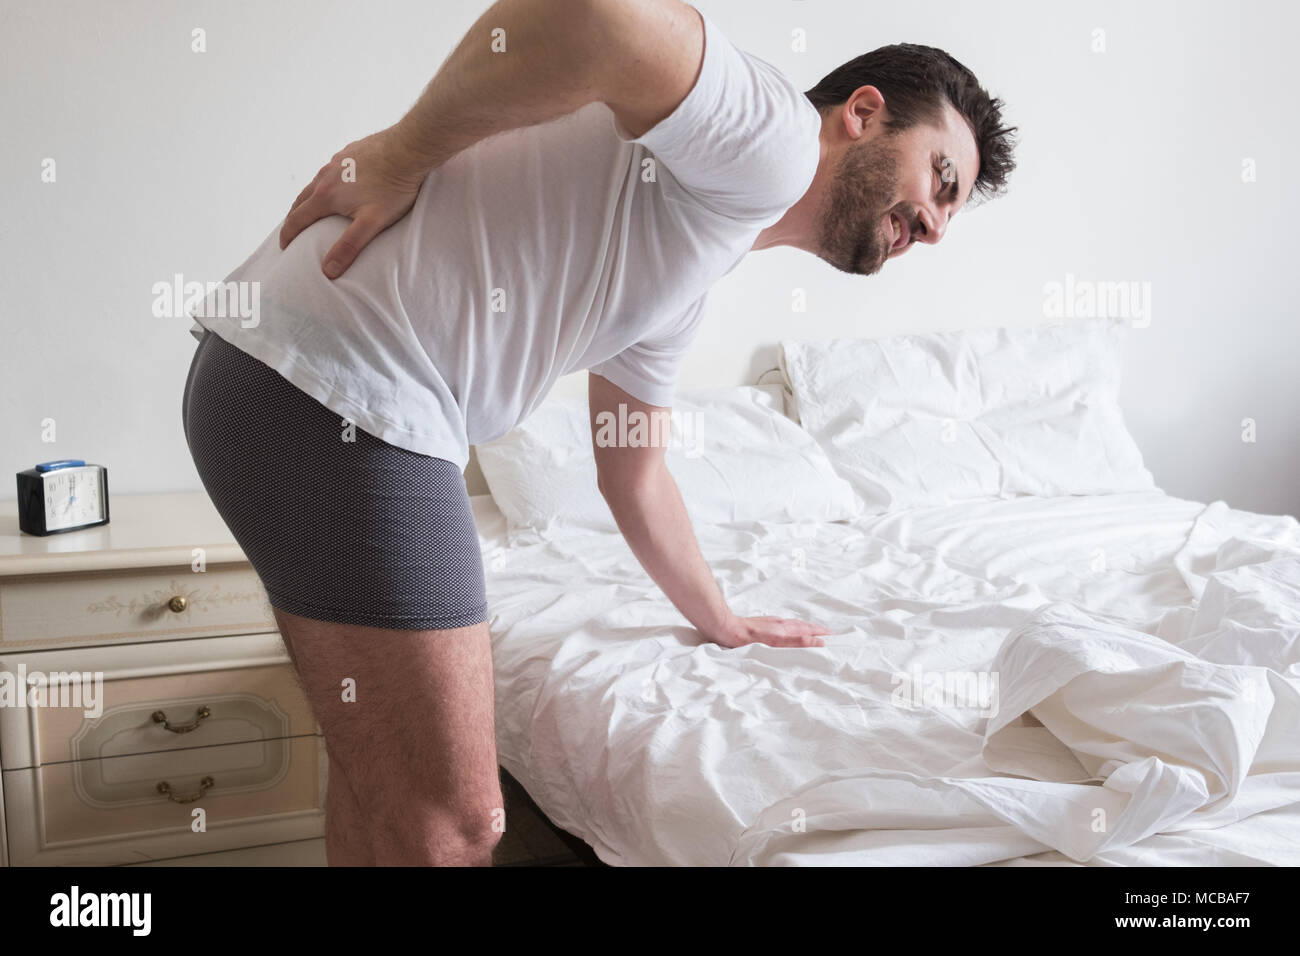 Man suffering from backache getting out of bed - Stock Image